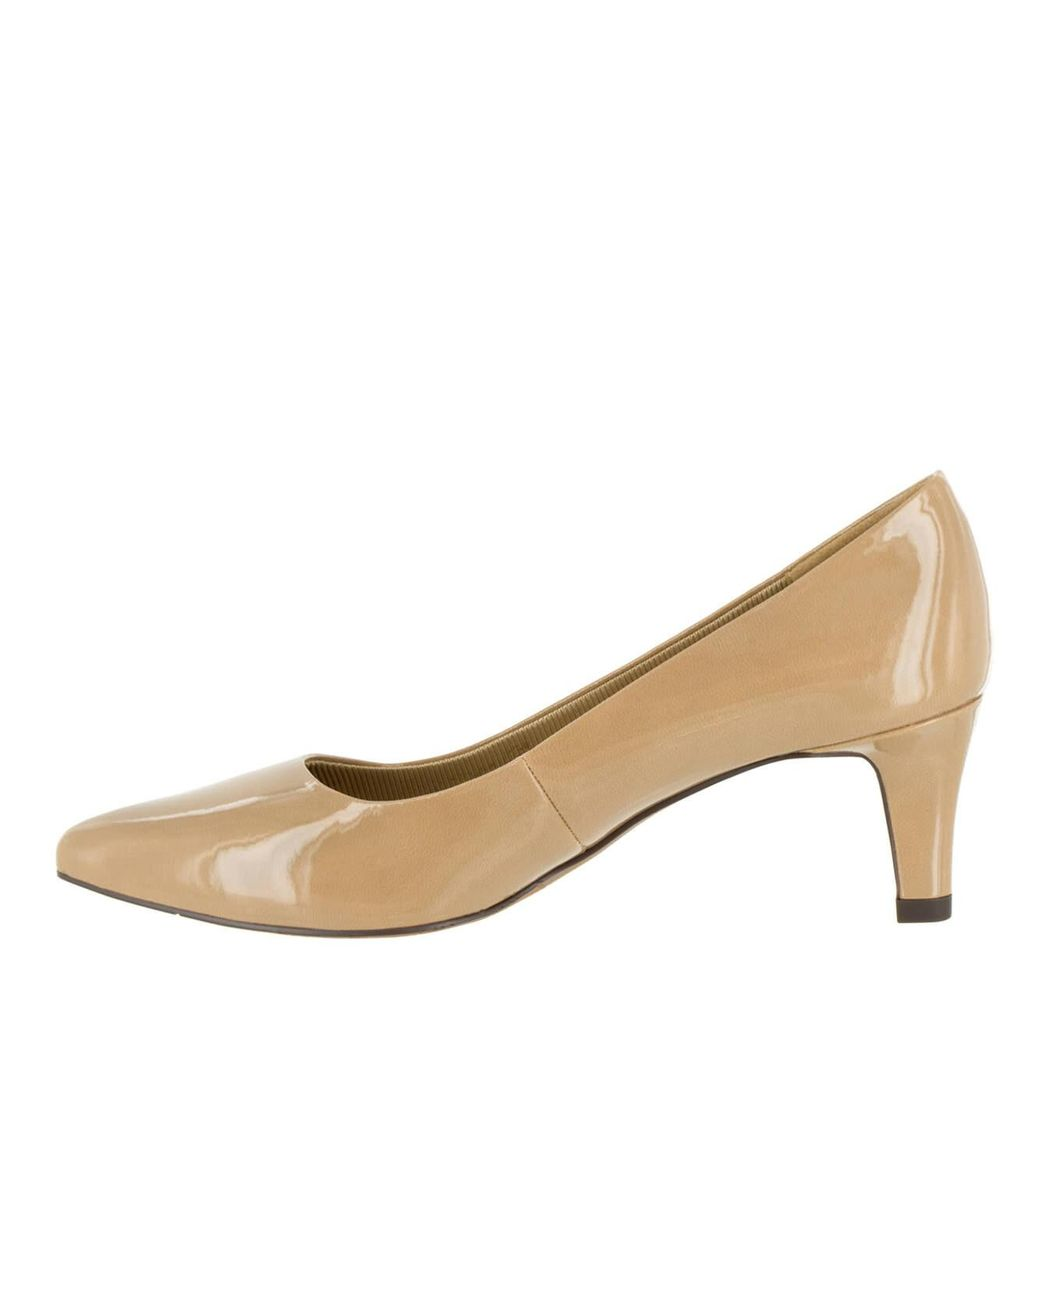 Easy Street Rubber Pointe Dress Shoe in Nude Patent (Natural